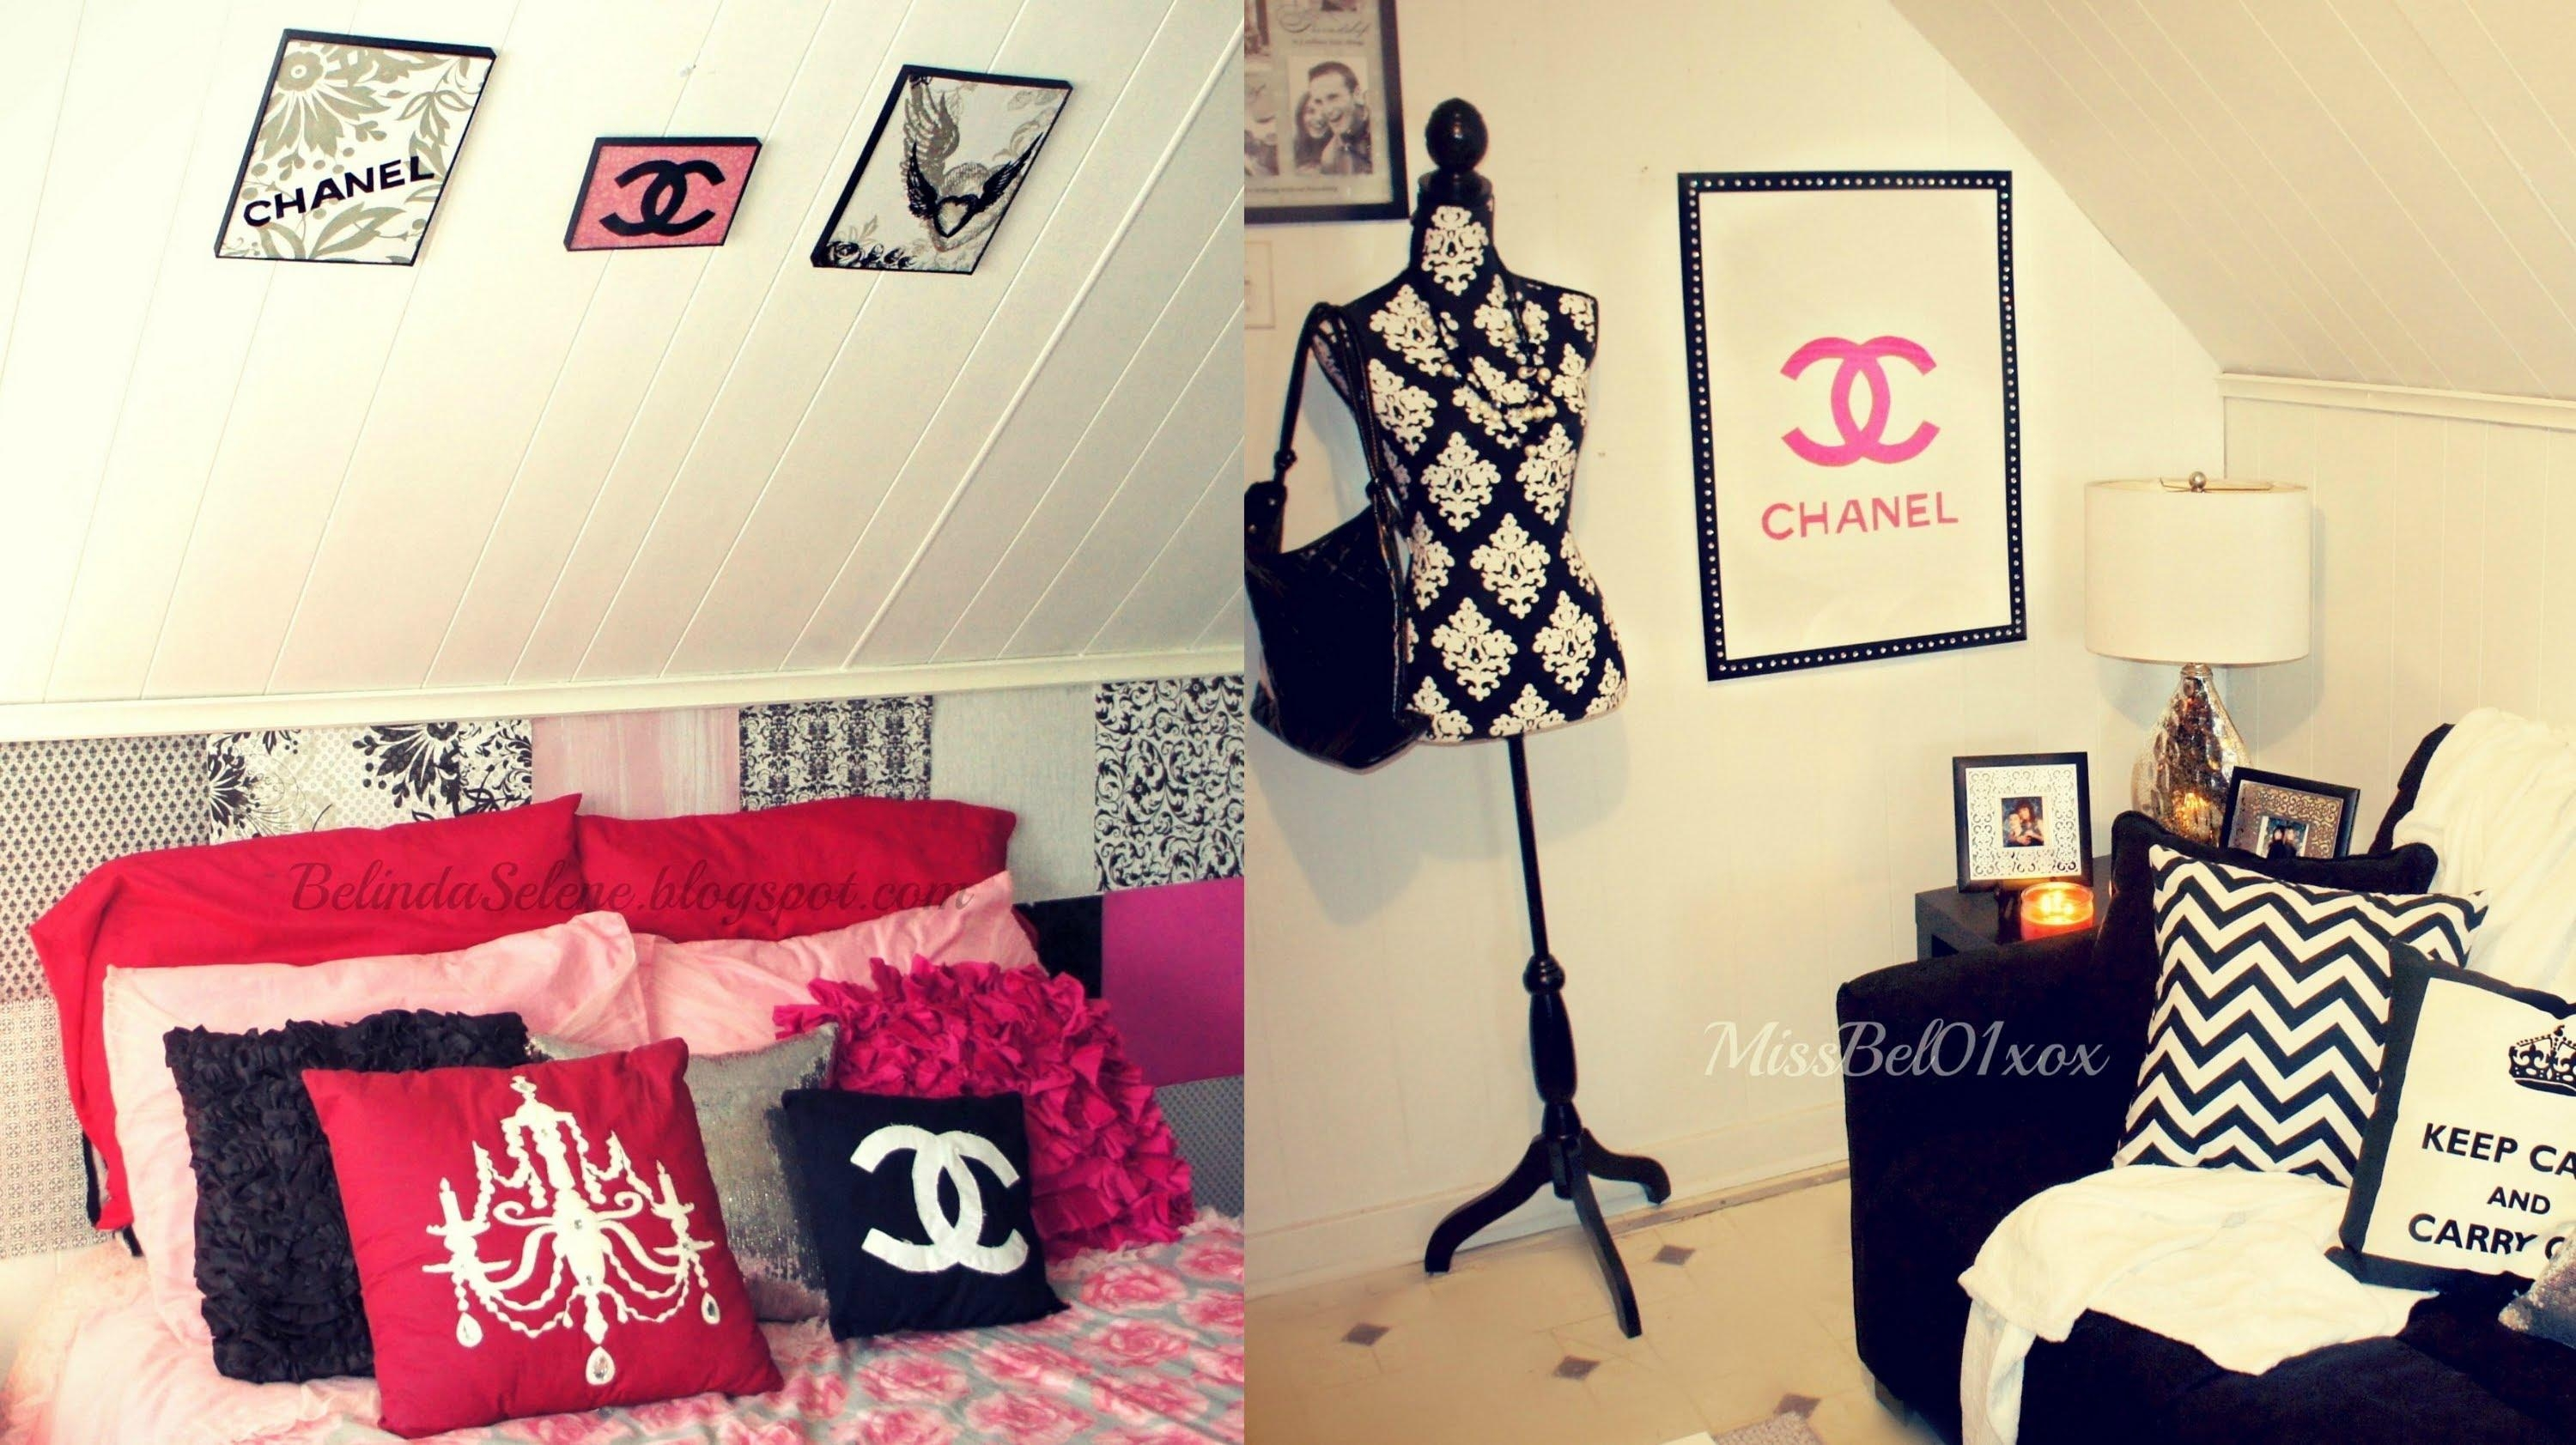 Diy Room Decor: Wall Art – Missbel01Xox – Youtube Pertaining To Chanel Wall Decor (Image 13 of 20)